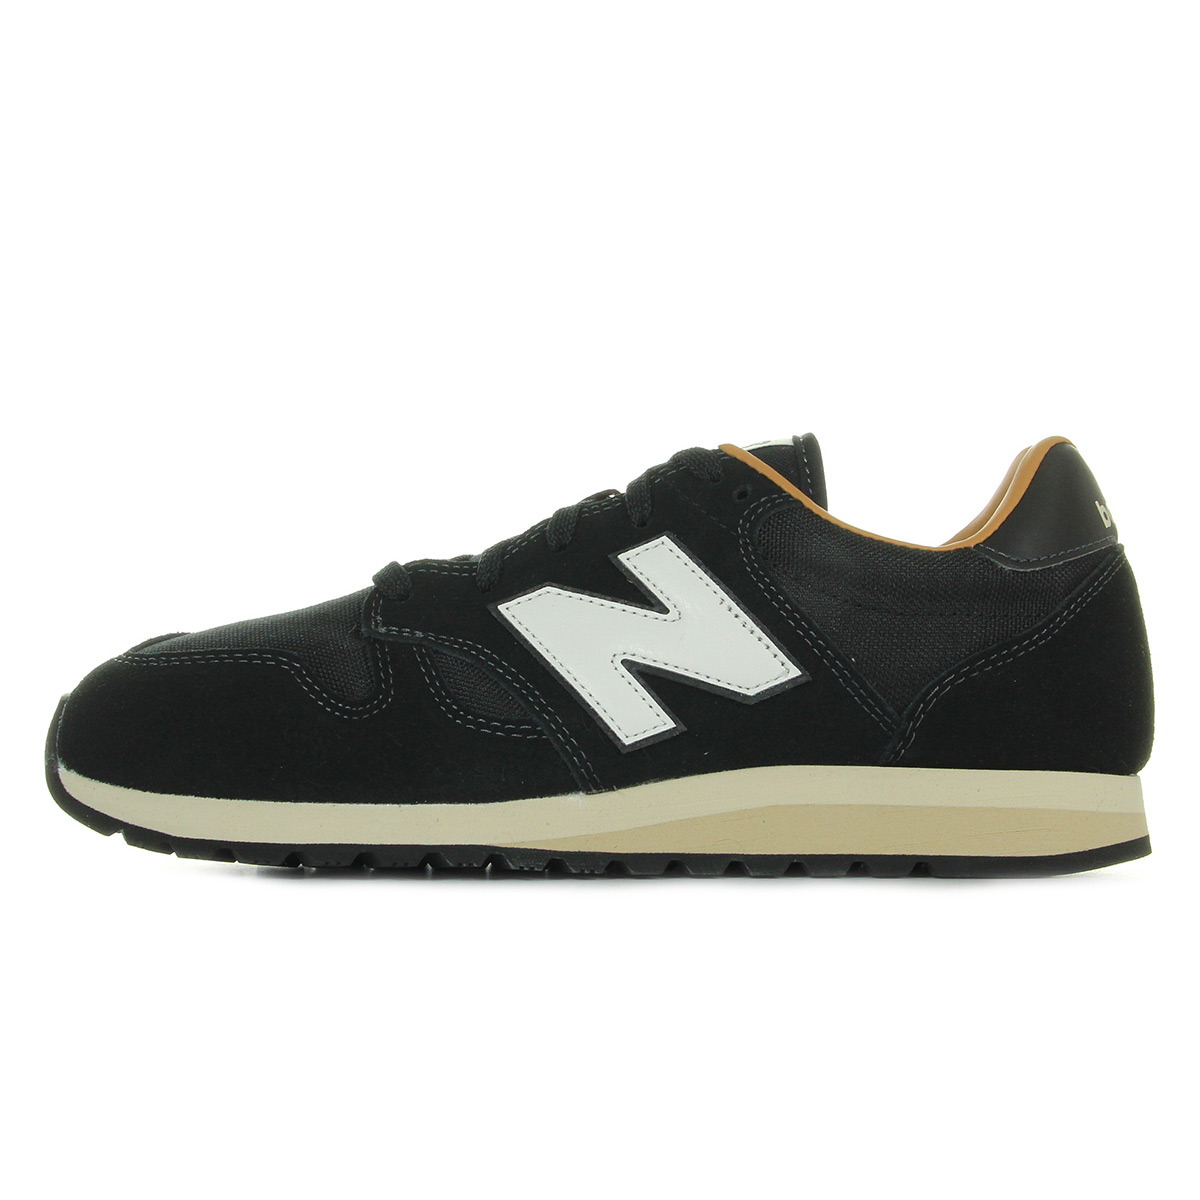 New Balance U520 BH U520BH, Baskets mode homme